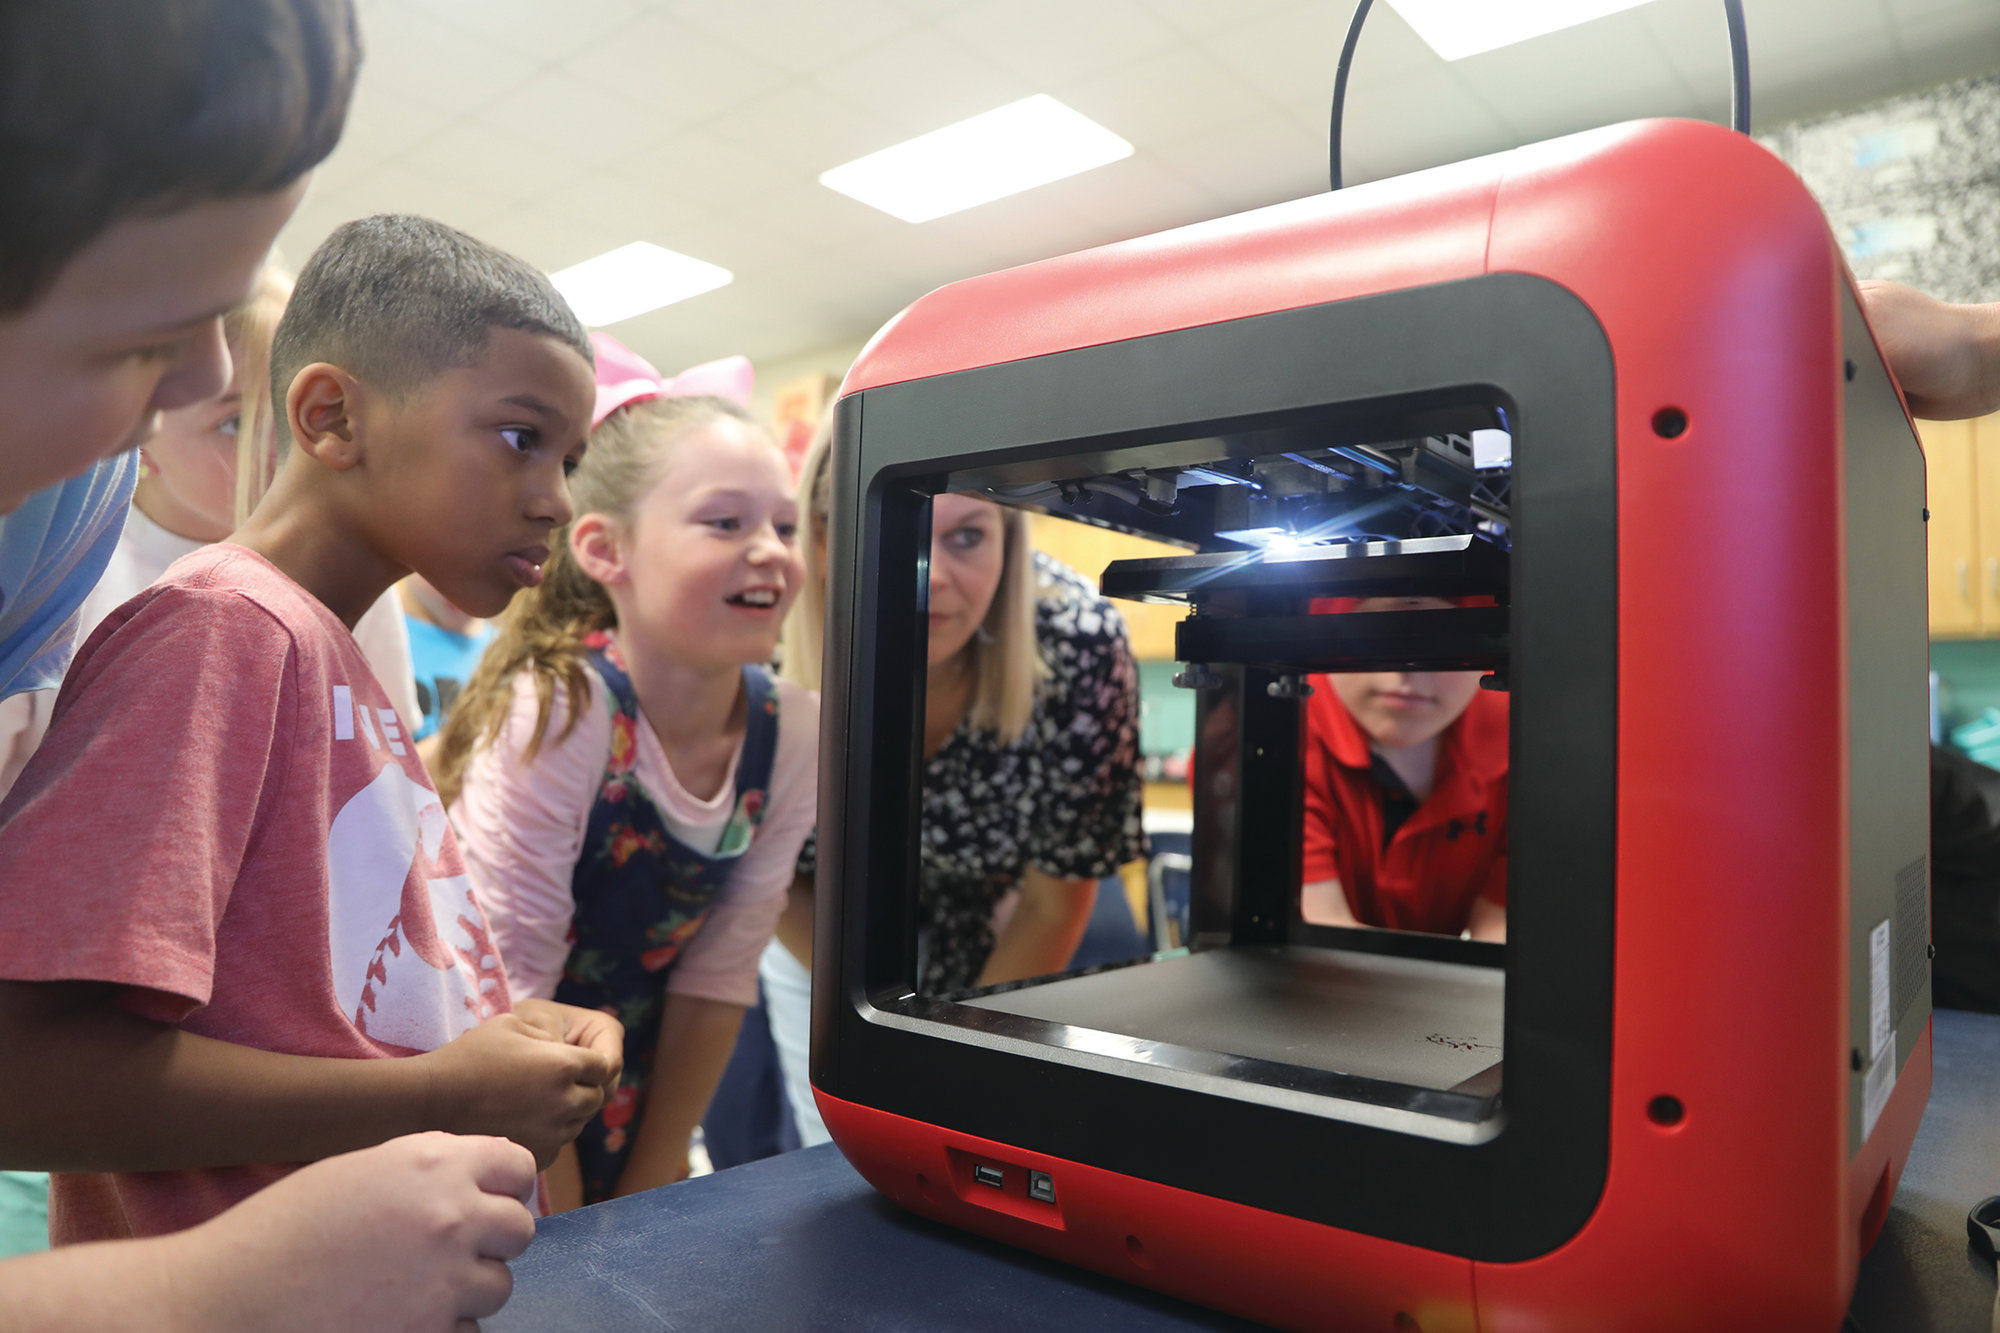 Alice Drive Elementary School teacher Lisa Jackson's fourth-grade class visited Kristi Waldron's STEM classroom lab to see how the new 3-D printer from Central Carolina Technical College works.